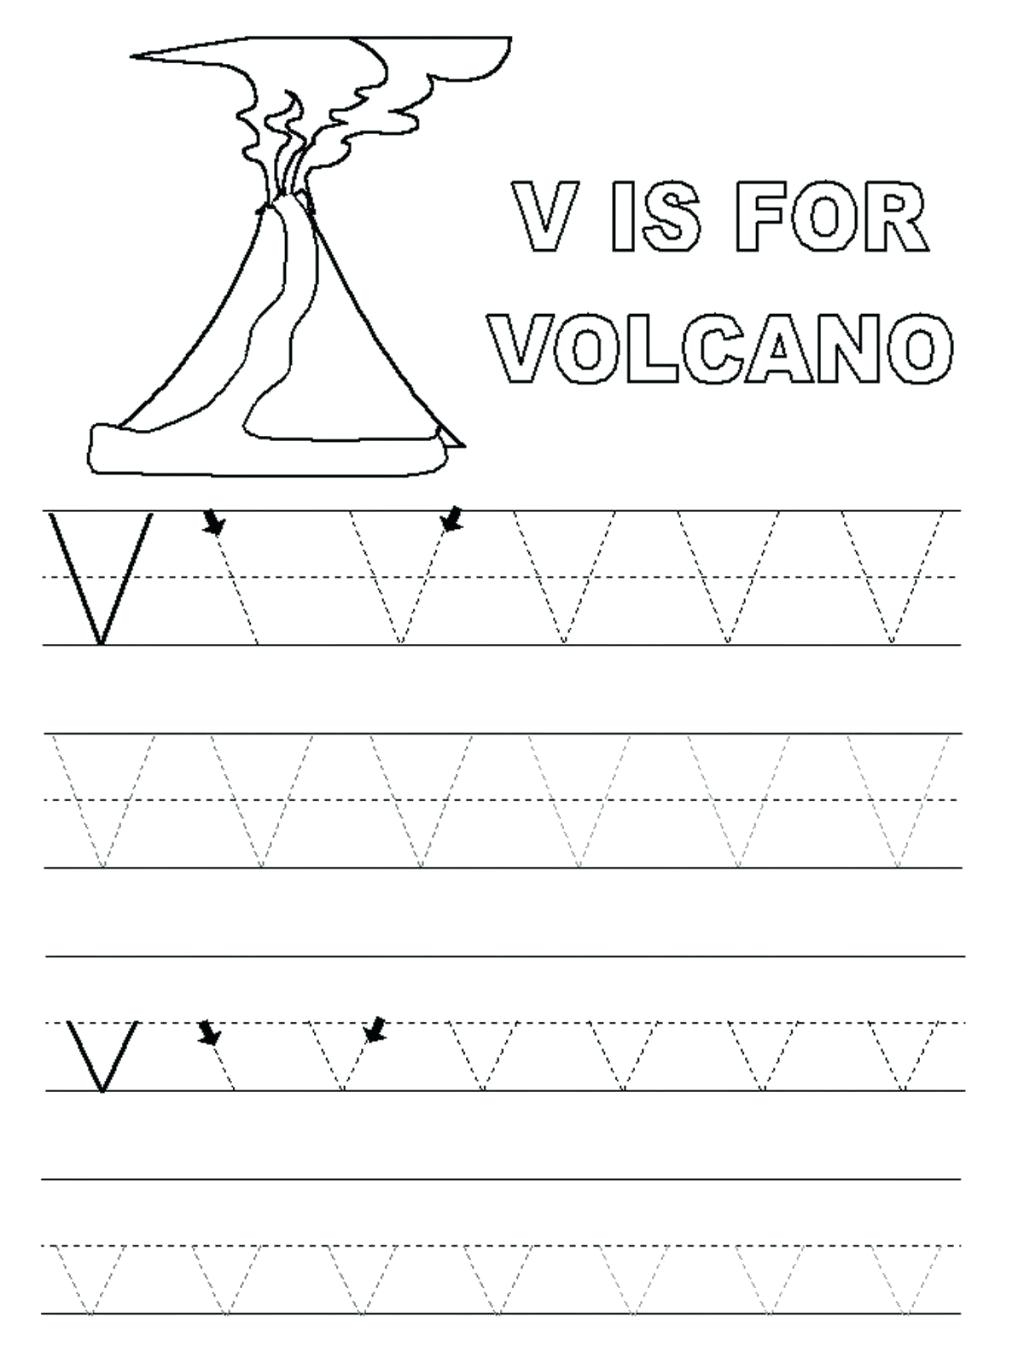 Preschool Worksheets With The Letter V - Clover Hatunisi